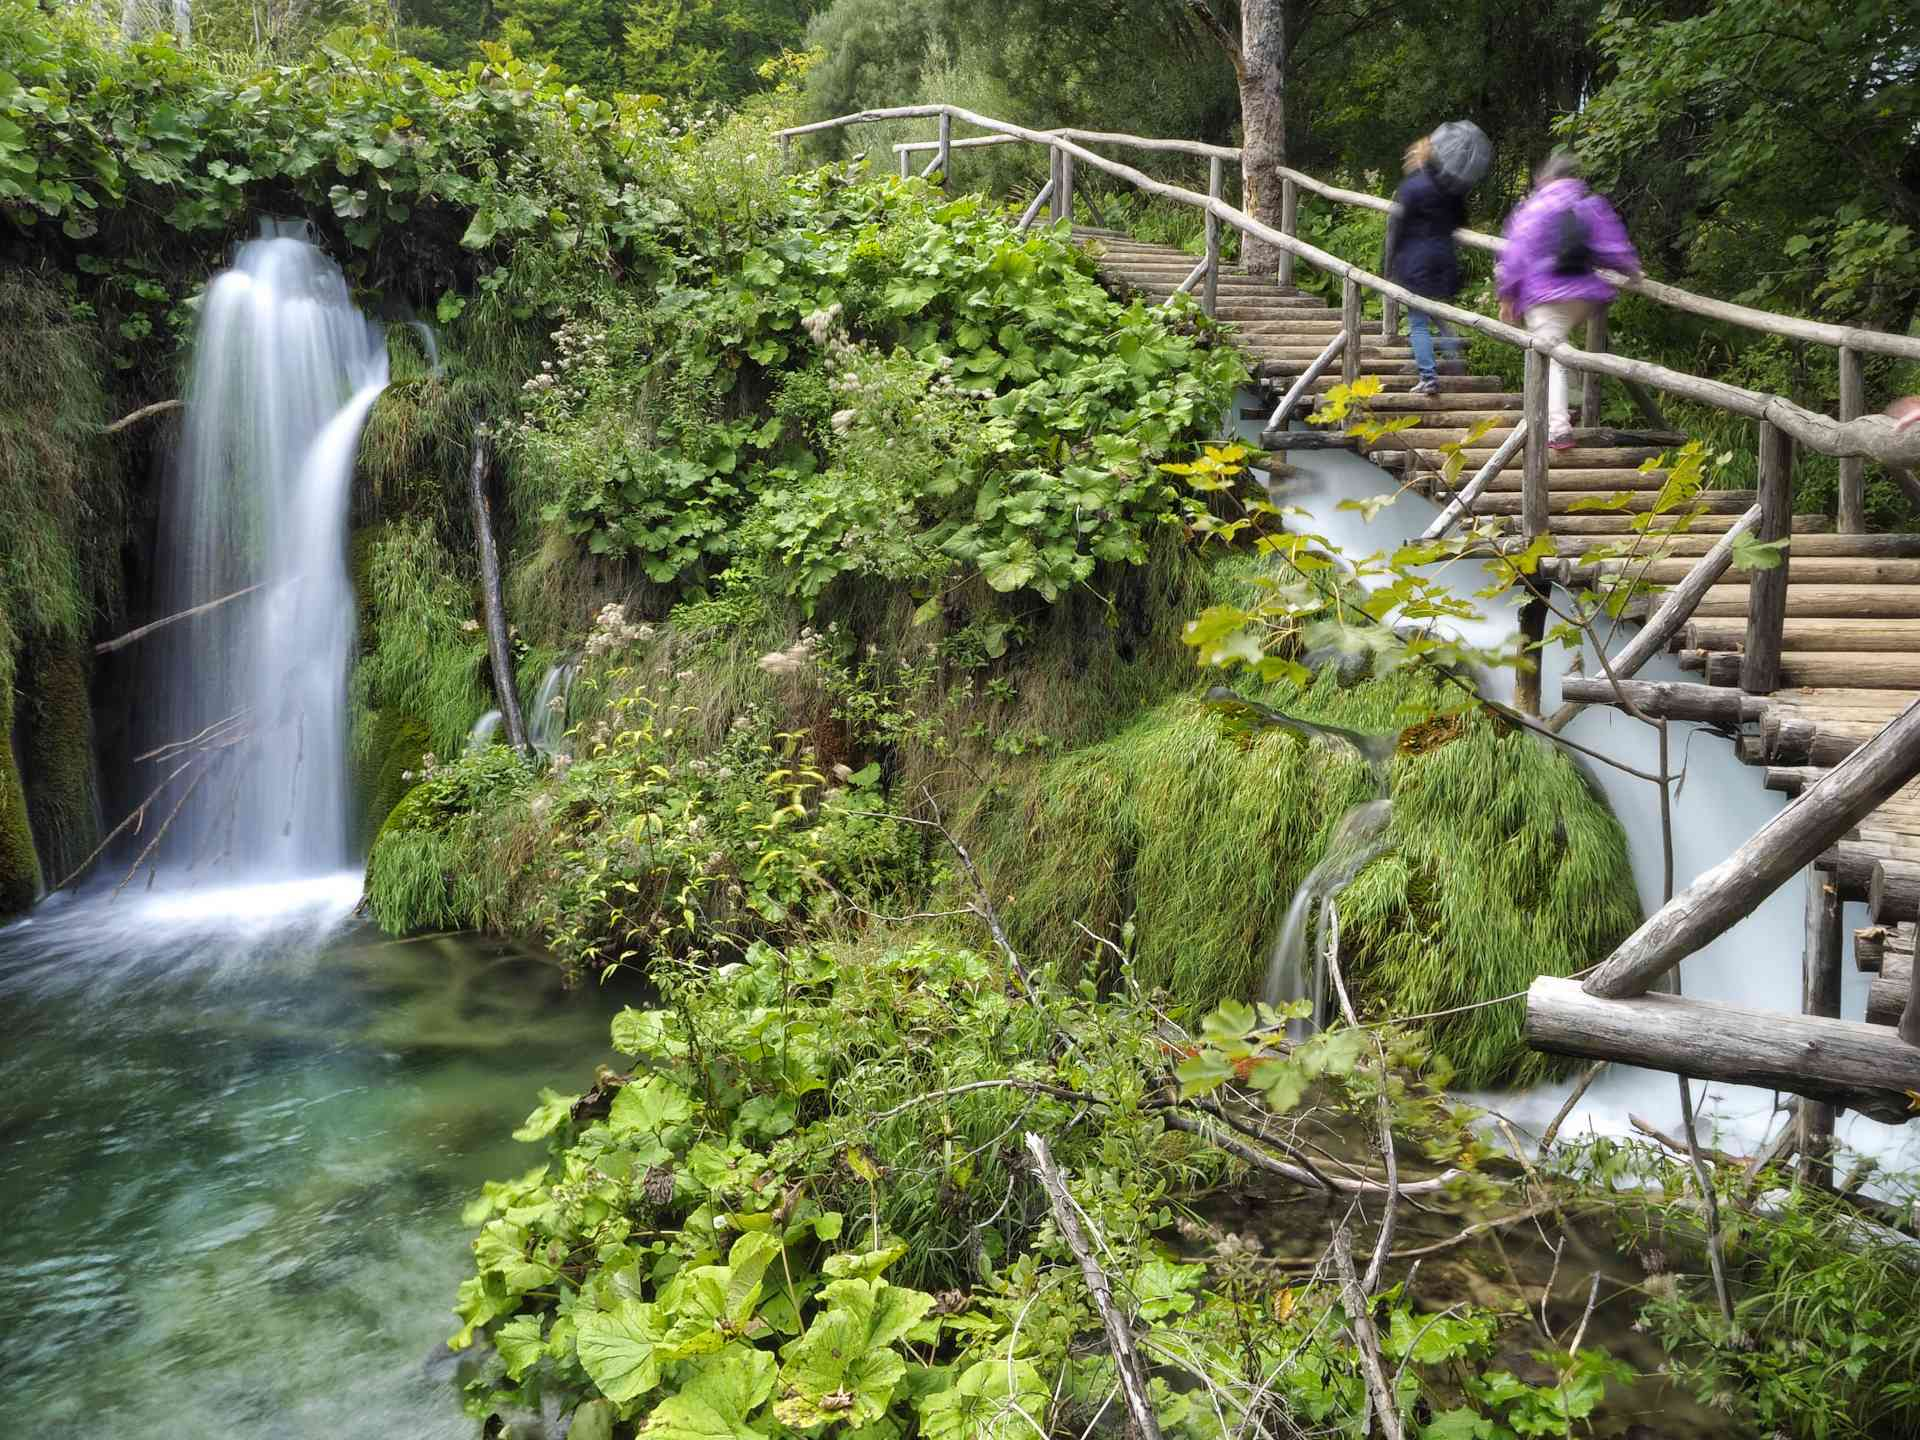 Serene Plitvice Lakes & the Istrian Peninsula